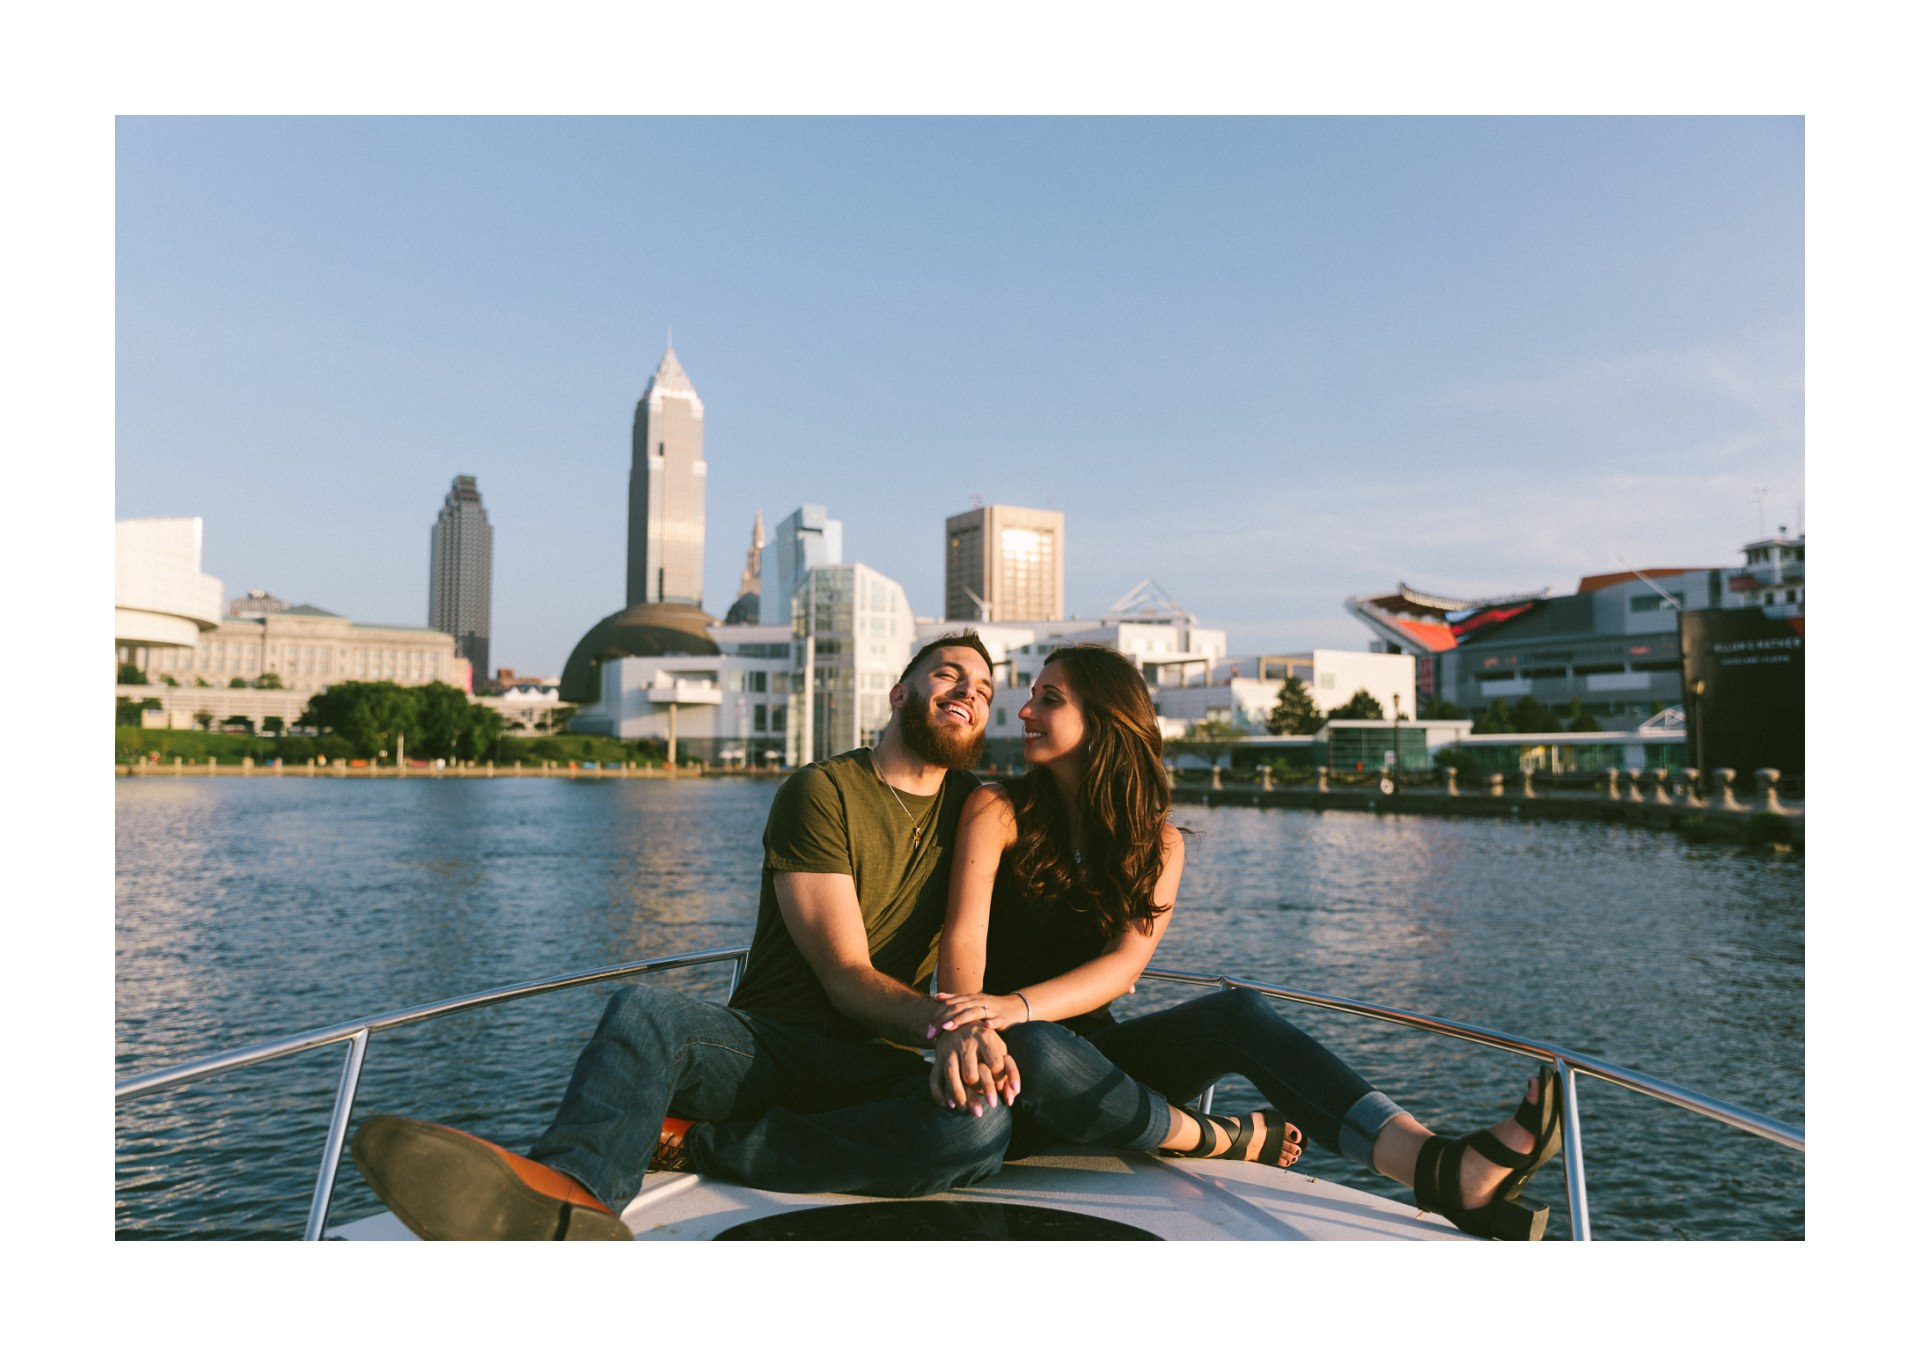 Flats East Bank Engagement Photos 14.jpg